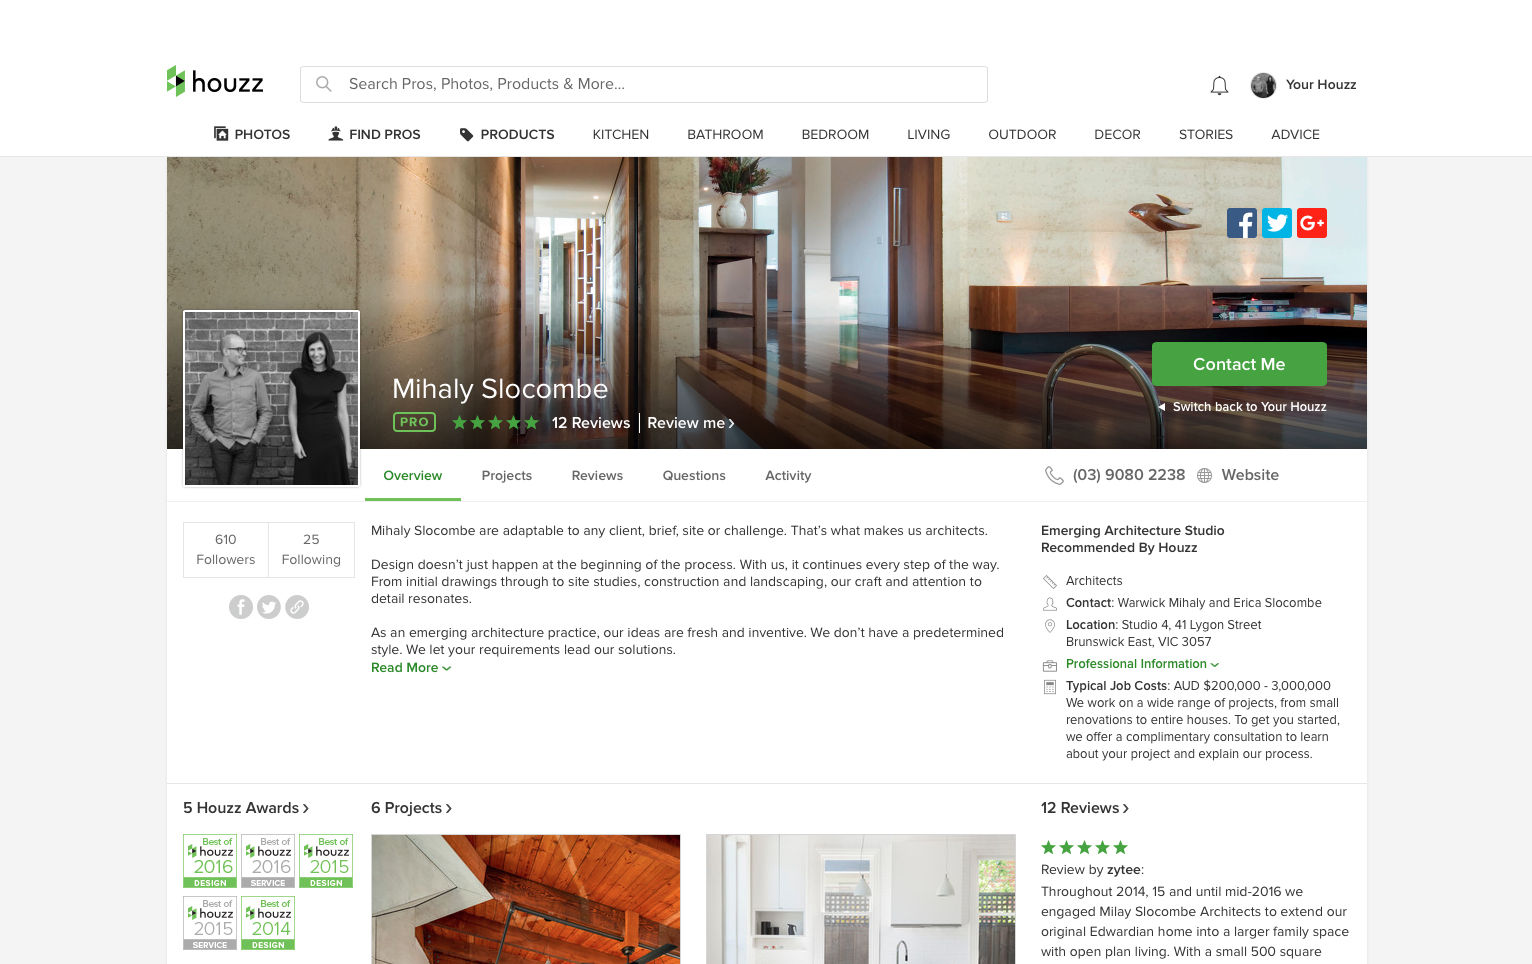 Houzz, Mihaly Slocombe, Homepage, Profile, Houses, Residential design, Architecture, Photos